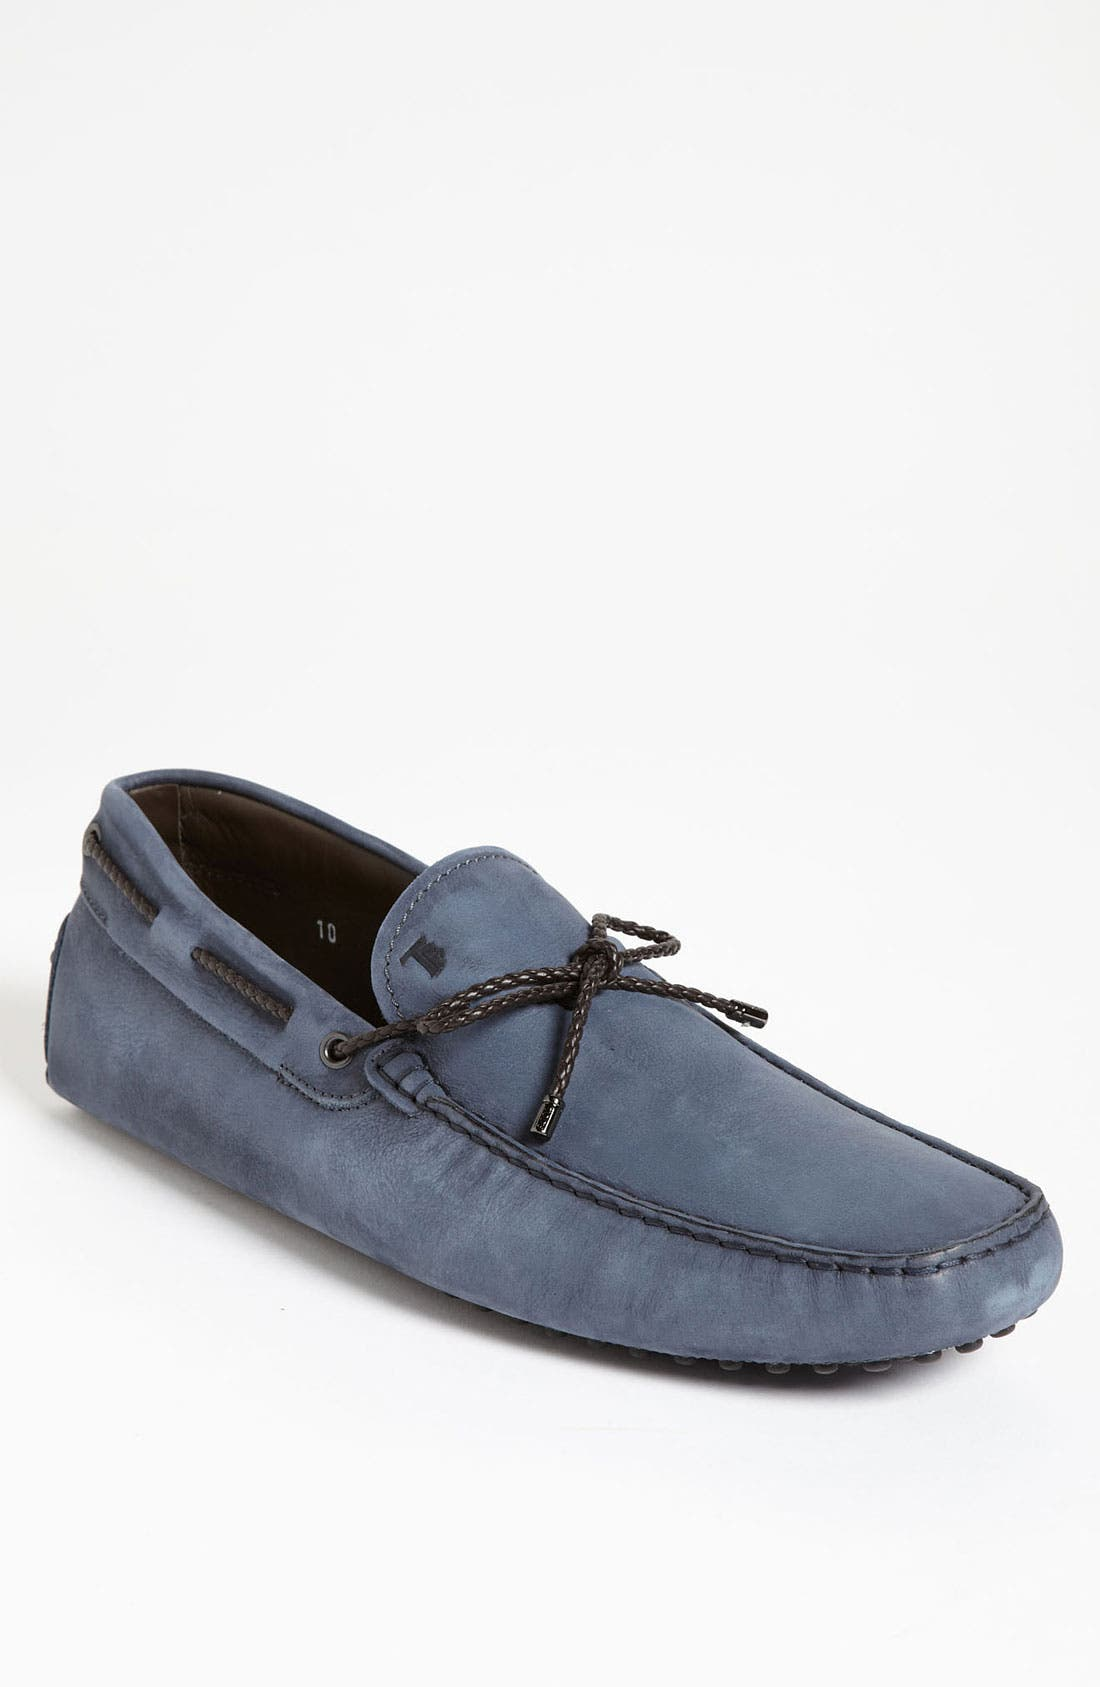 Main Image - Tod's 'Laccetto' Driving Shoe